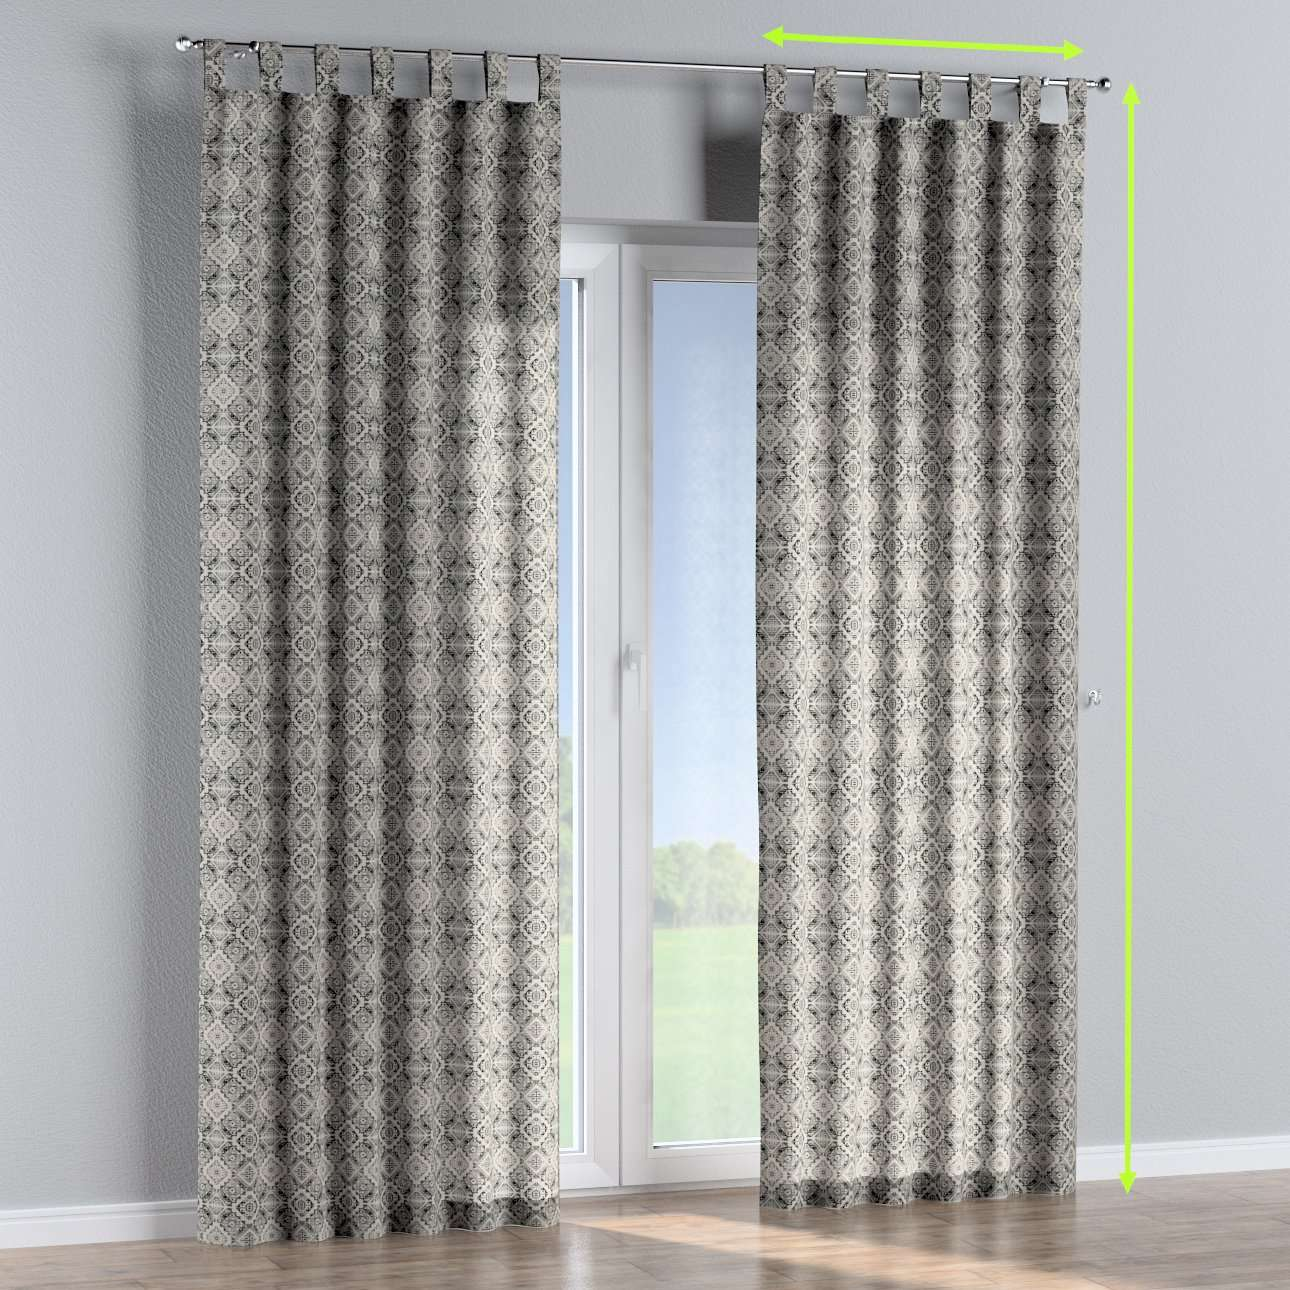 Tab top lined curtains in collection Comics/Geometrical, fabric: 141-18